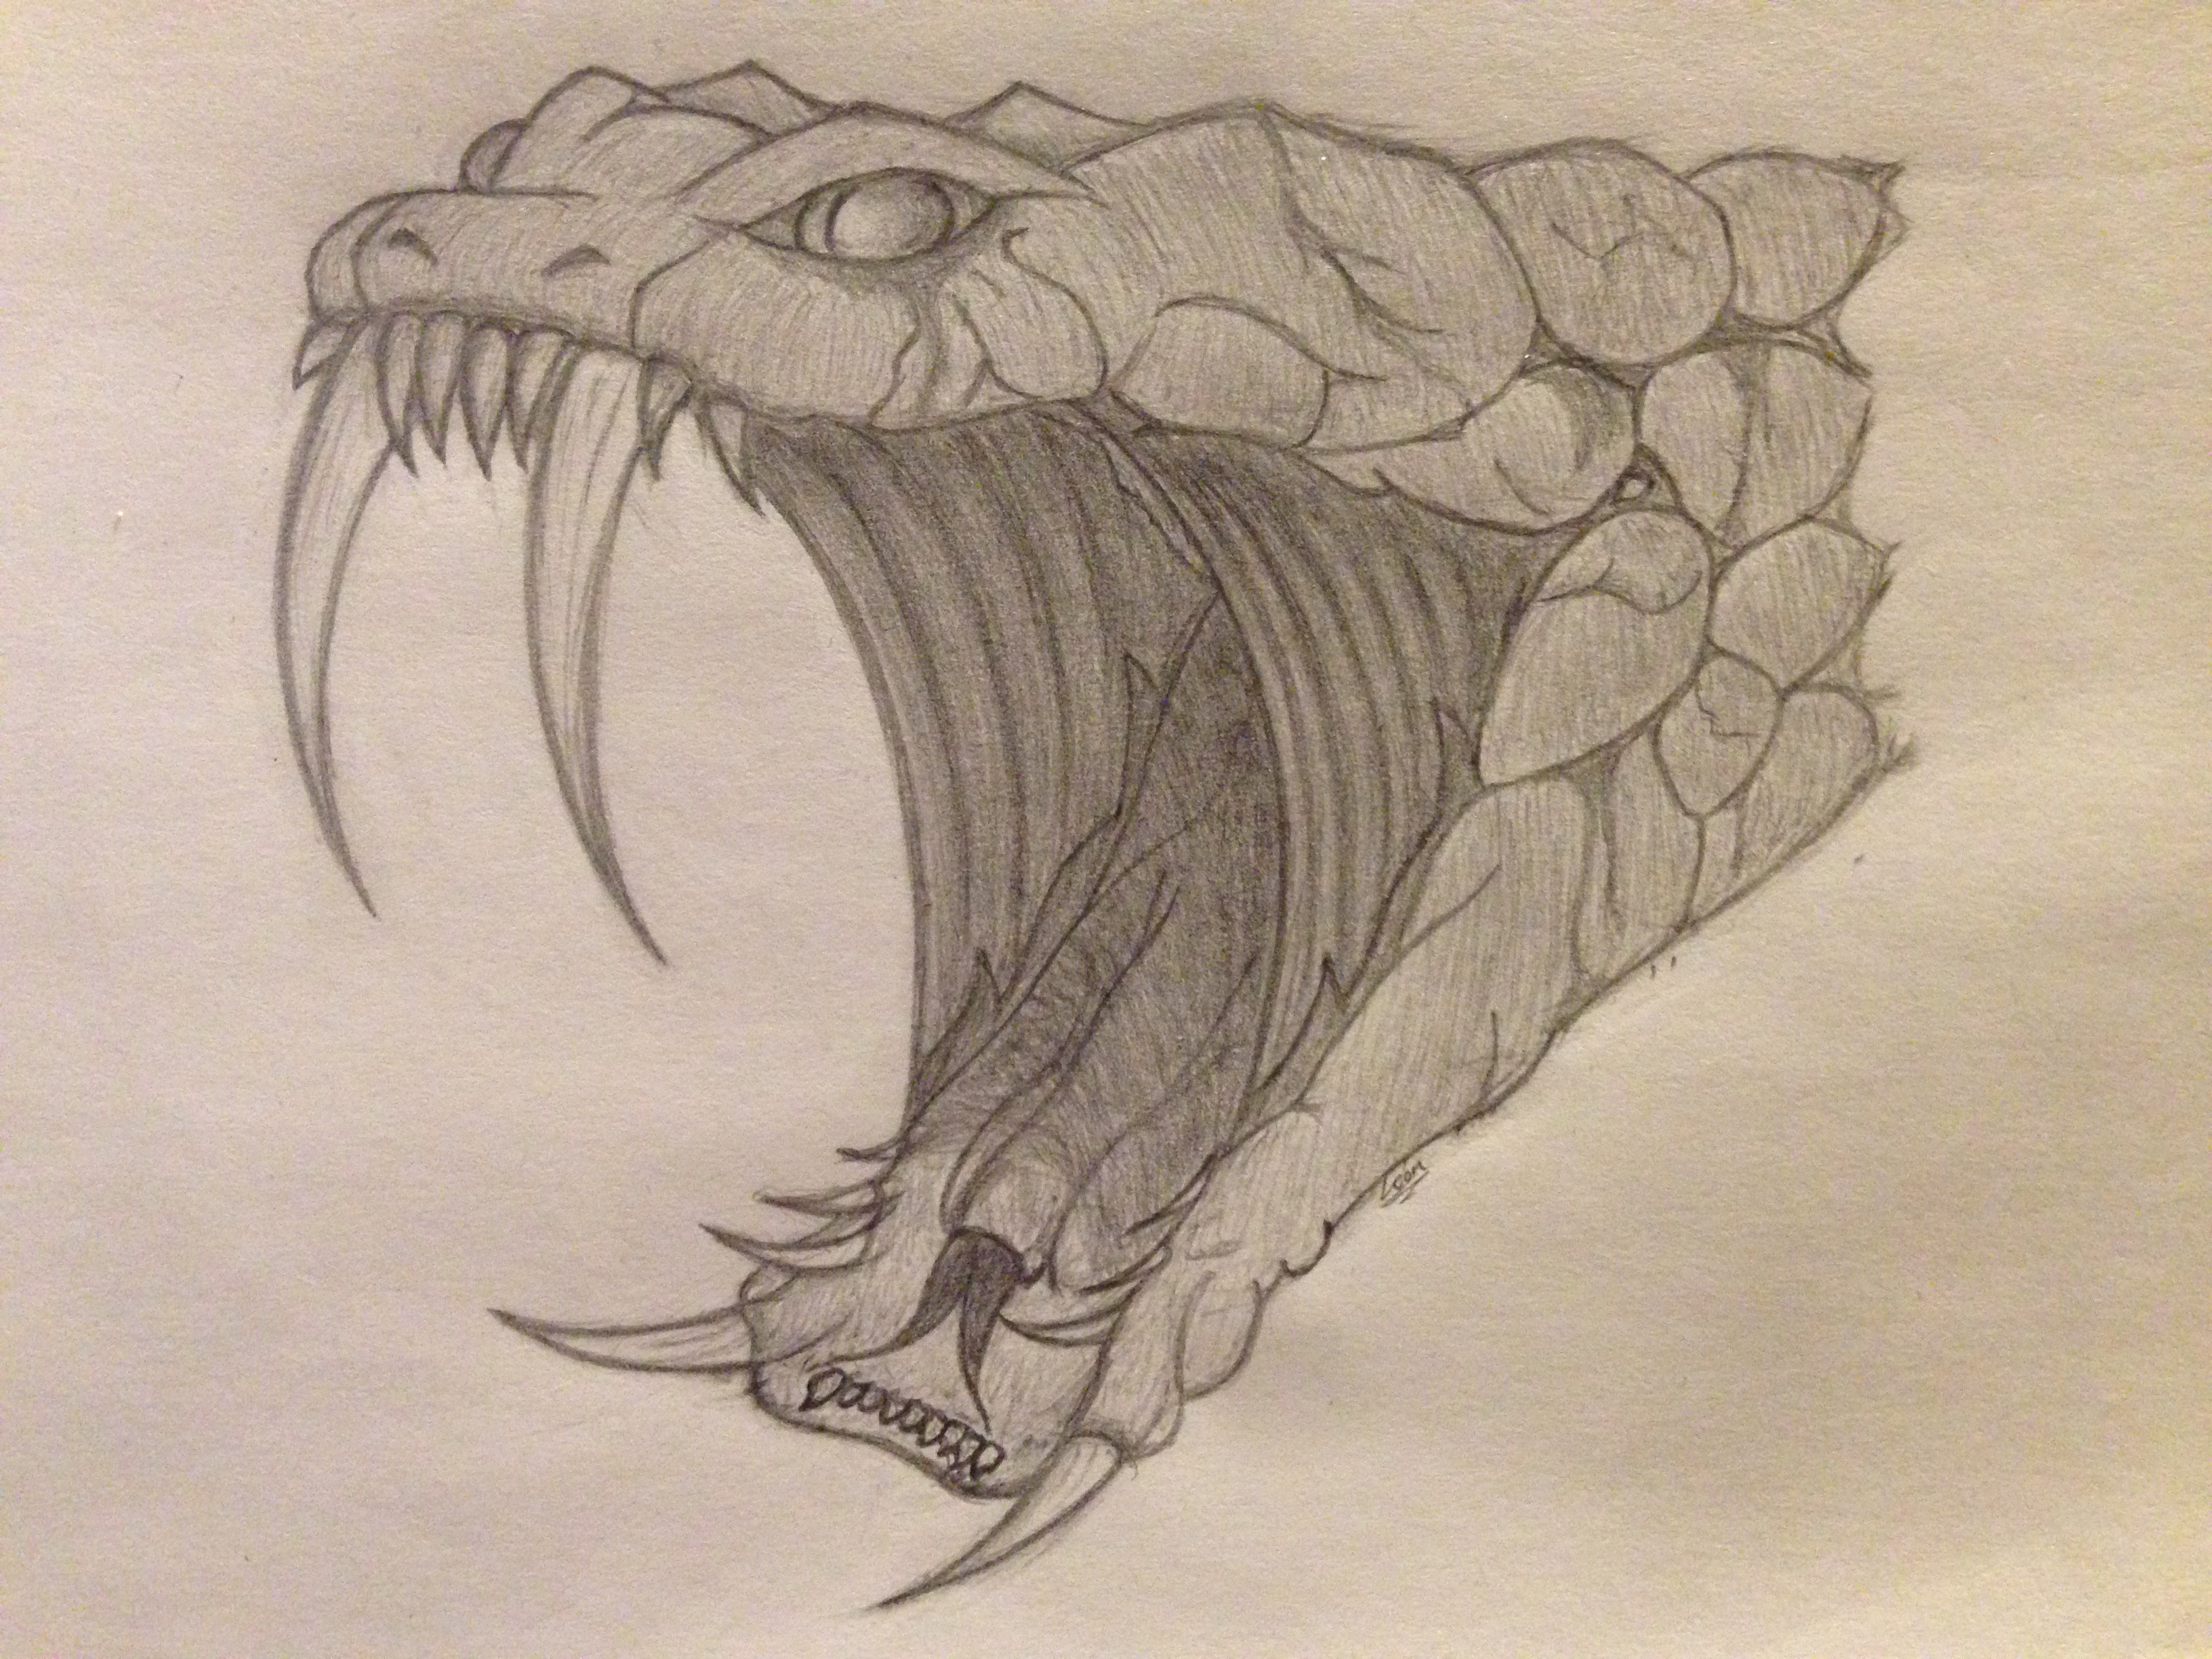 Rattlesnake Head Drawing At Getdrawings Com Free For Personal Use